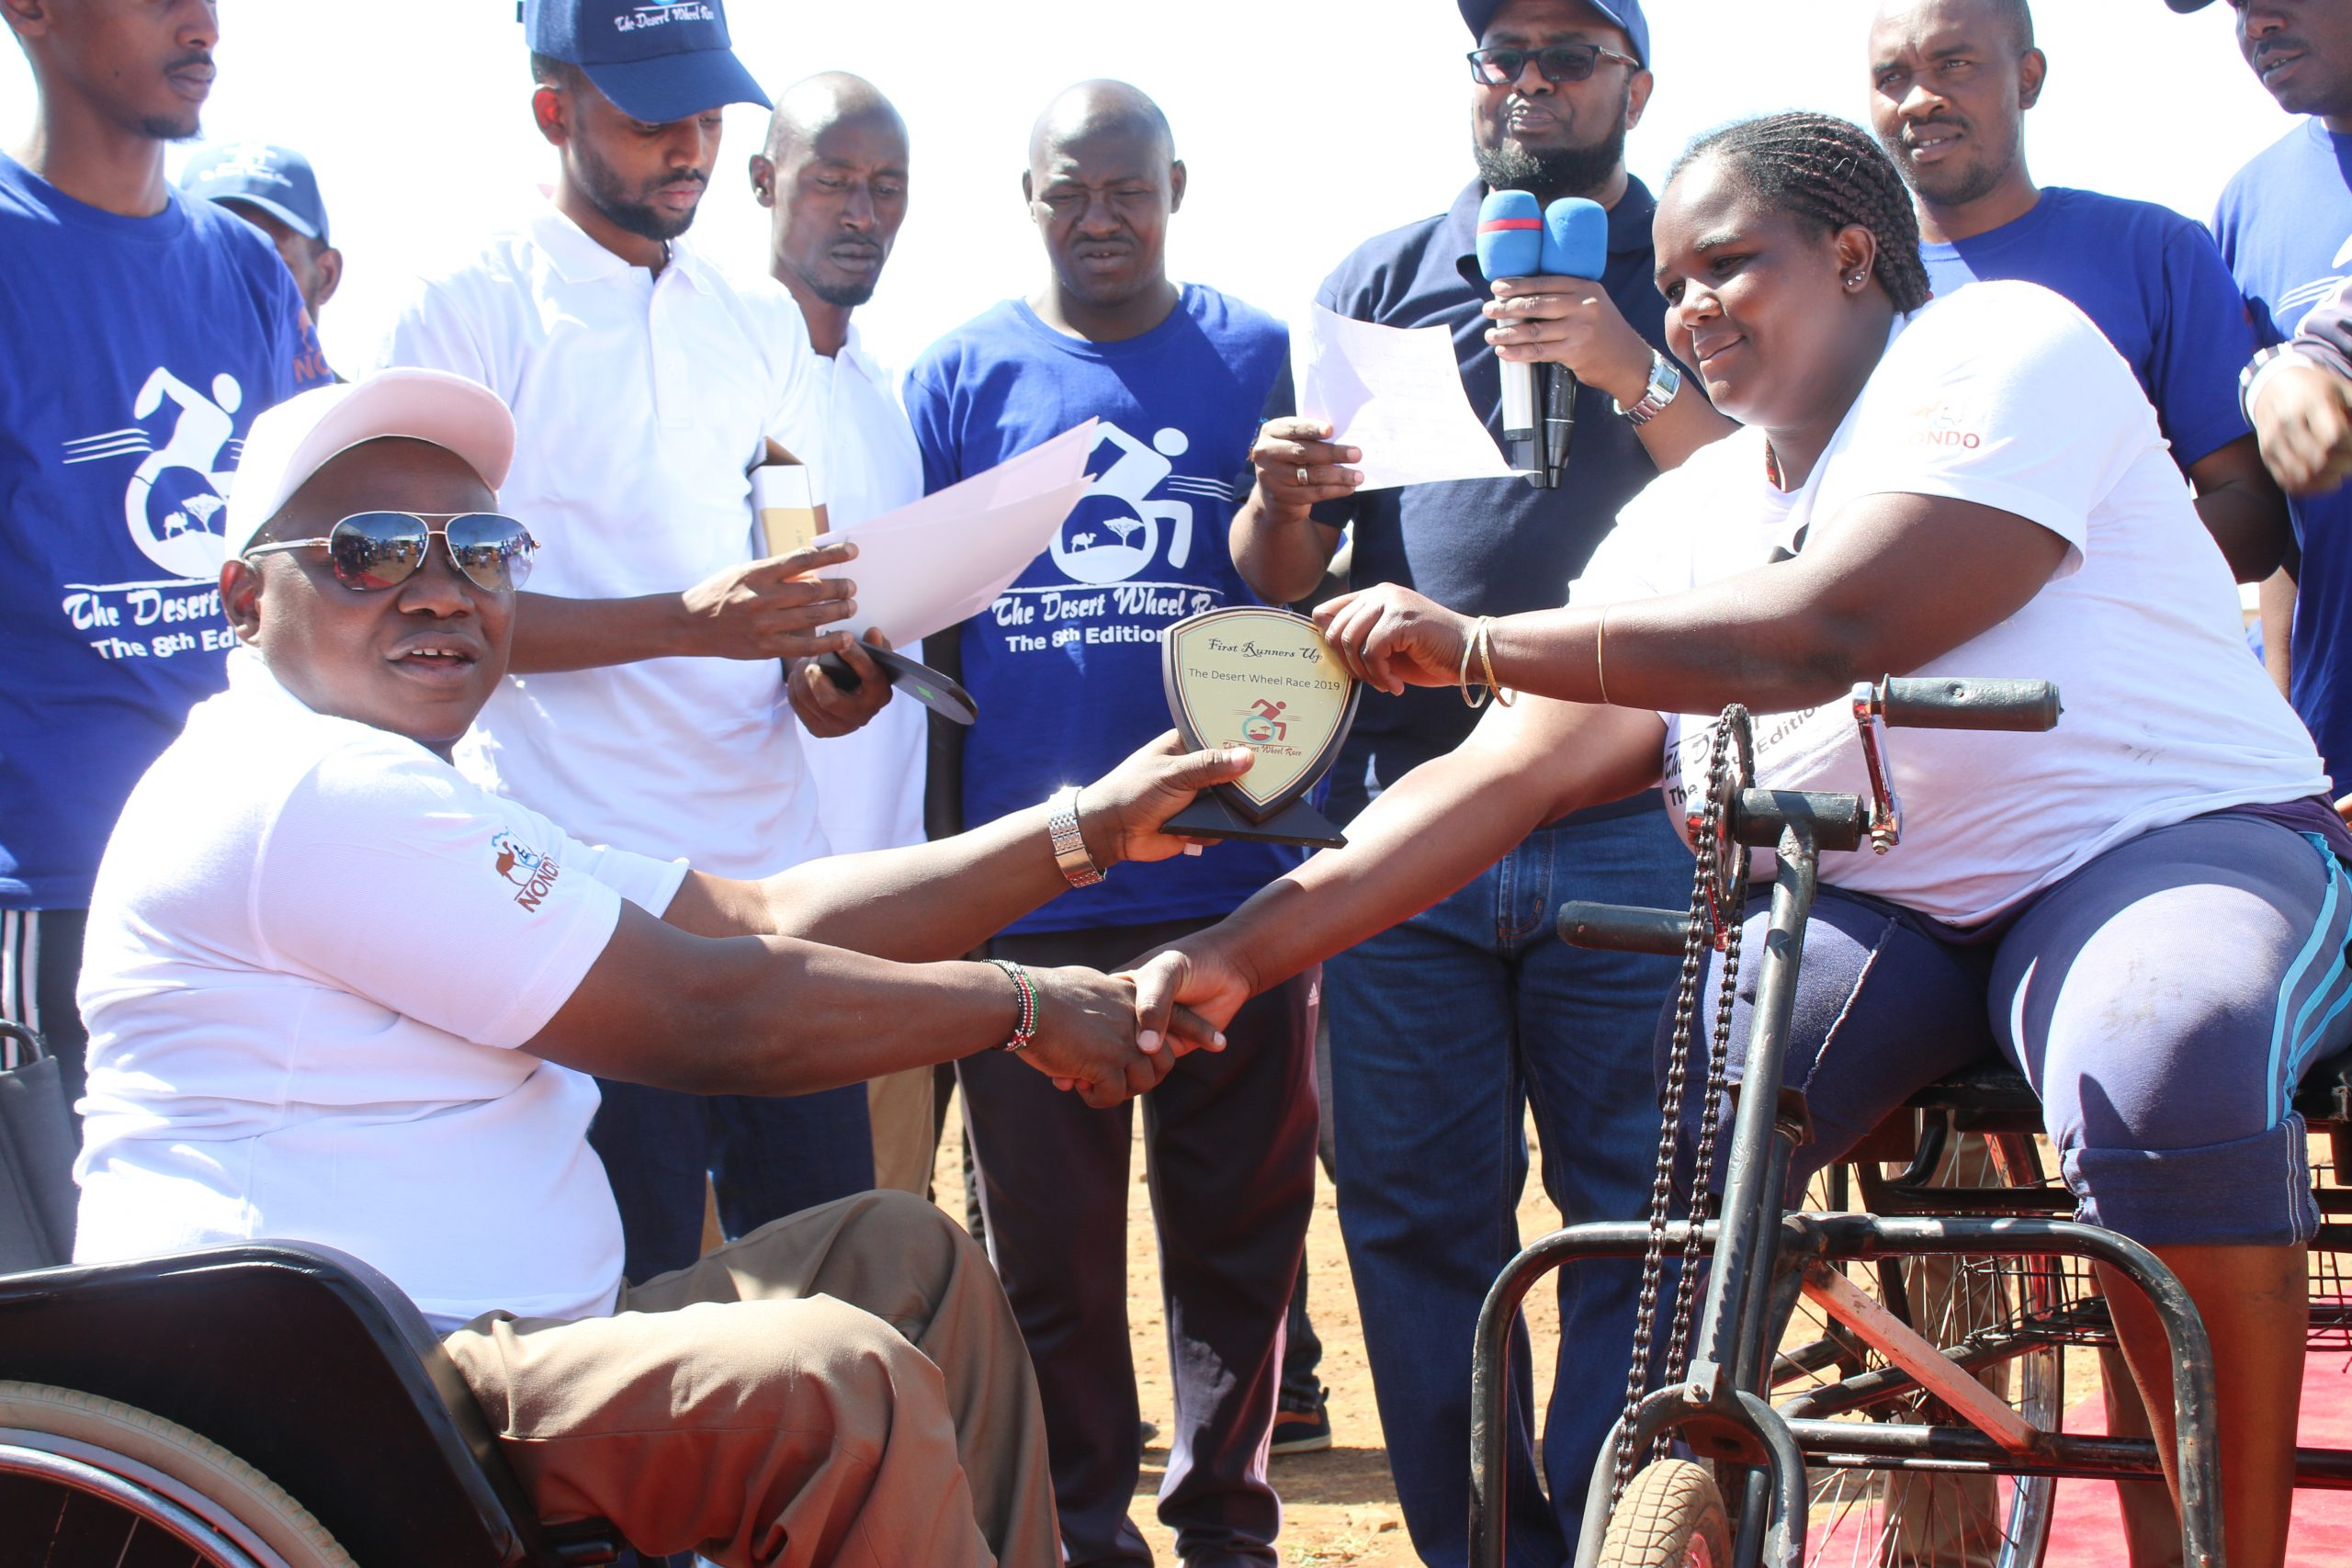 Disability is no inability